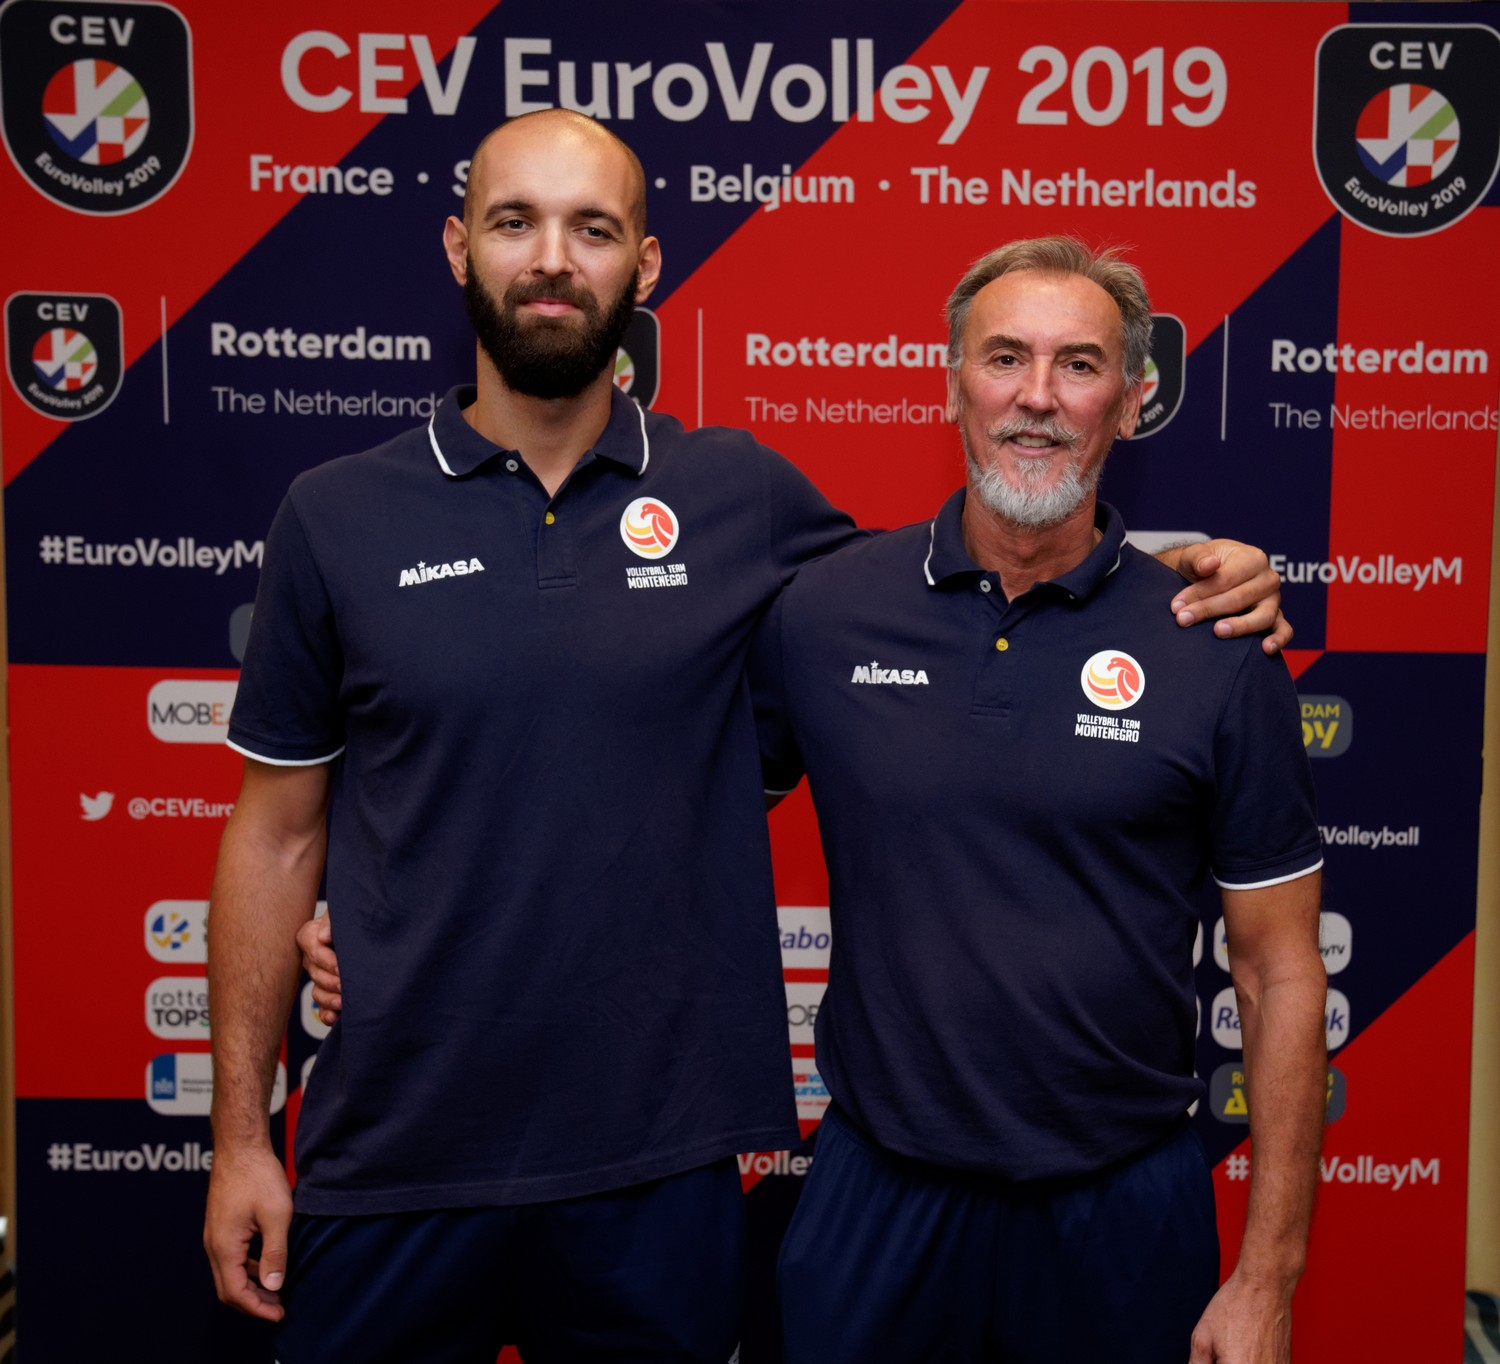 Ned, CEV Press Meeting EC Volleyball 2019, Rotterdam